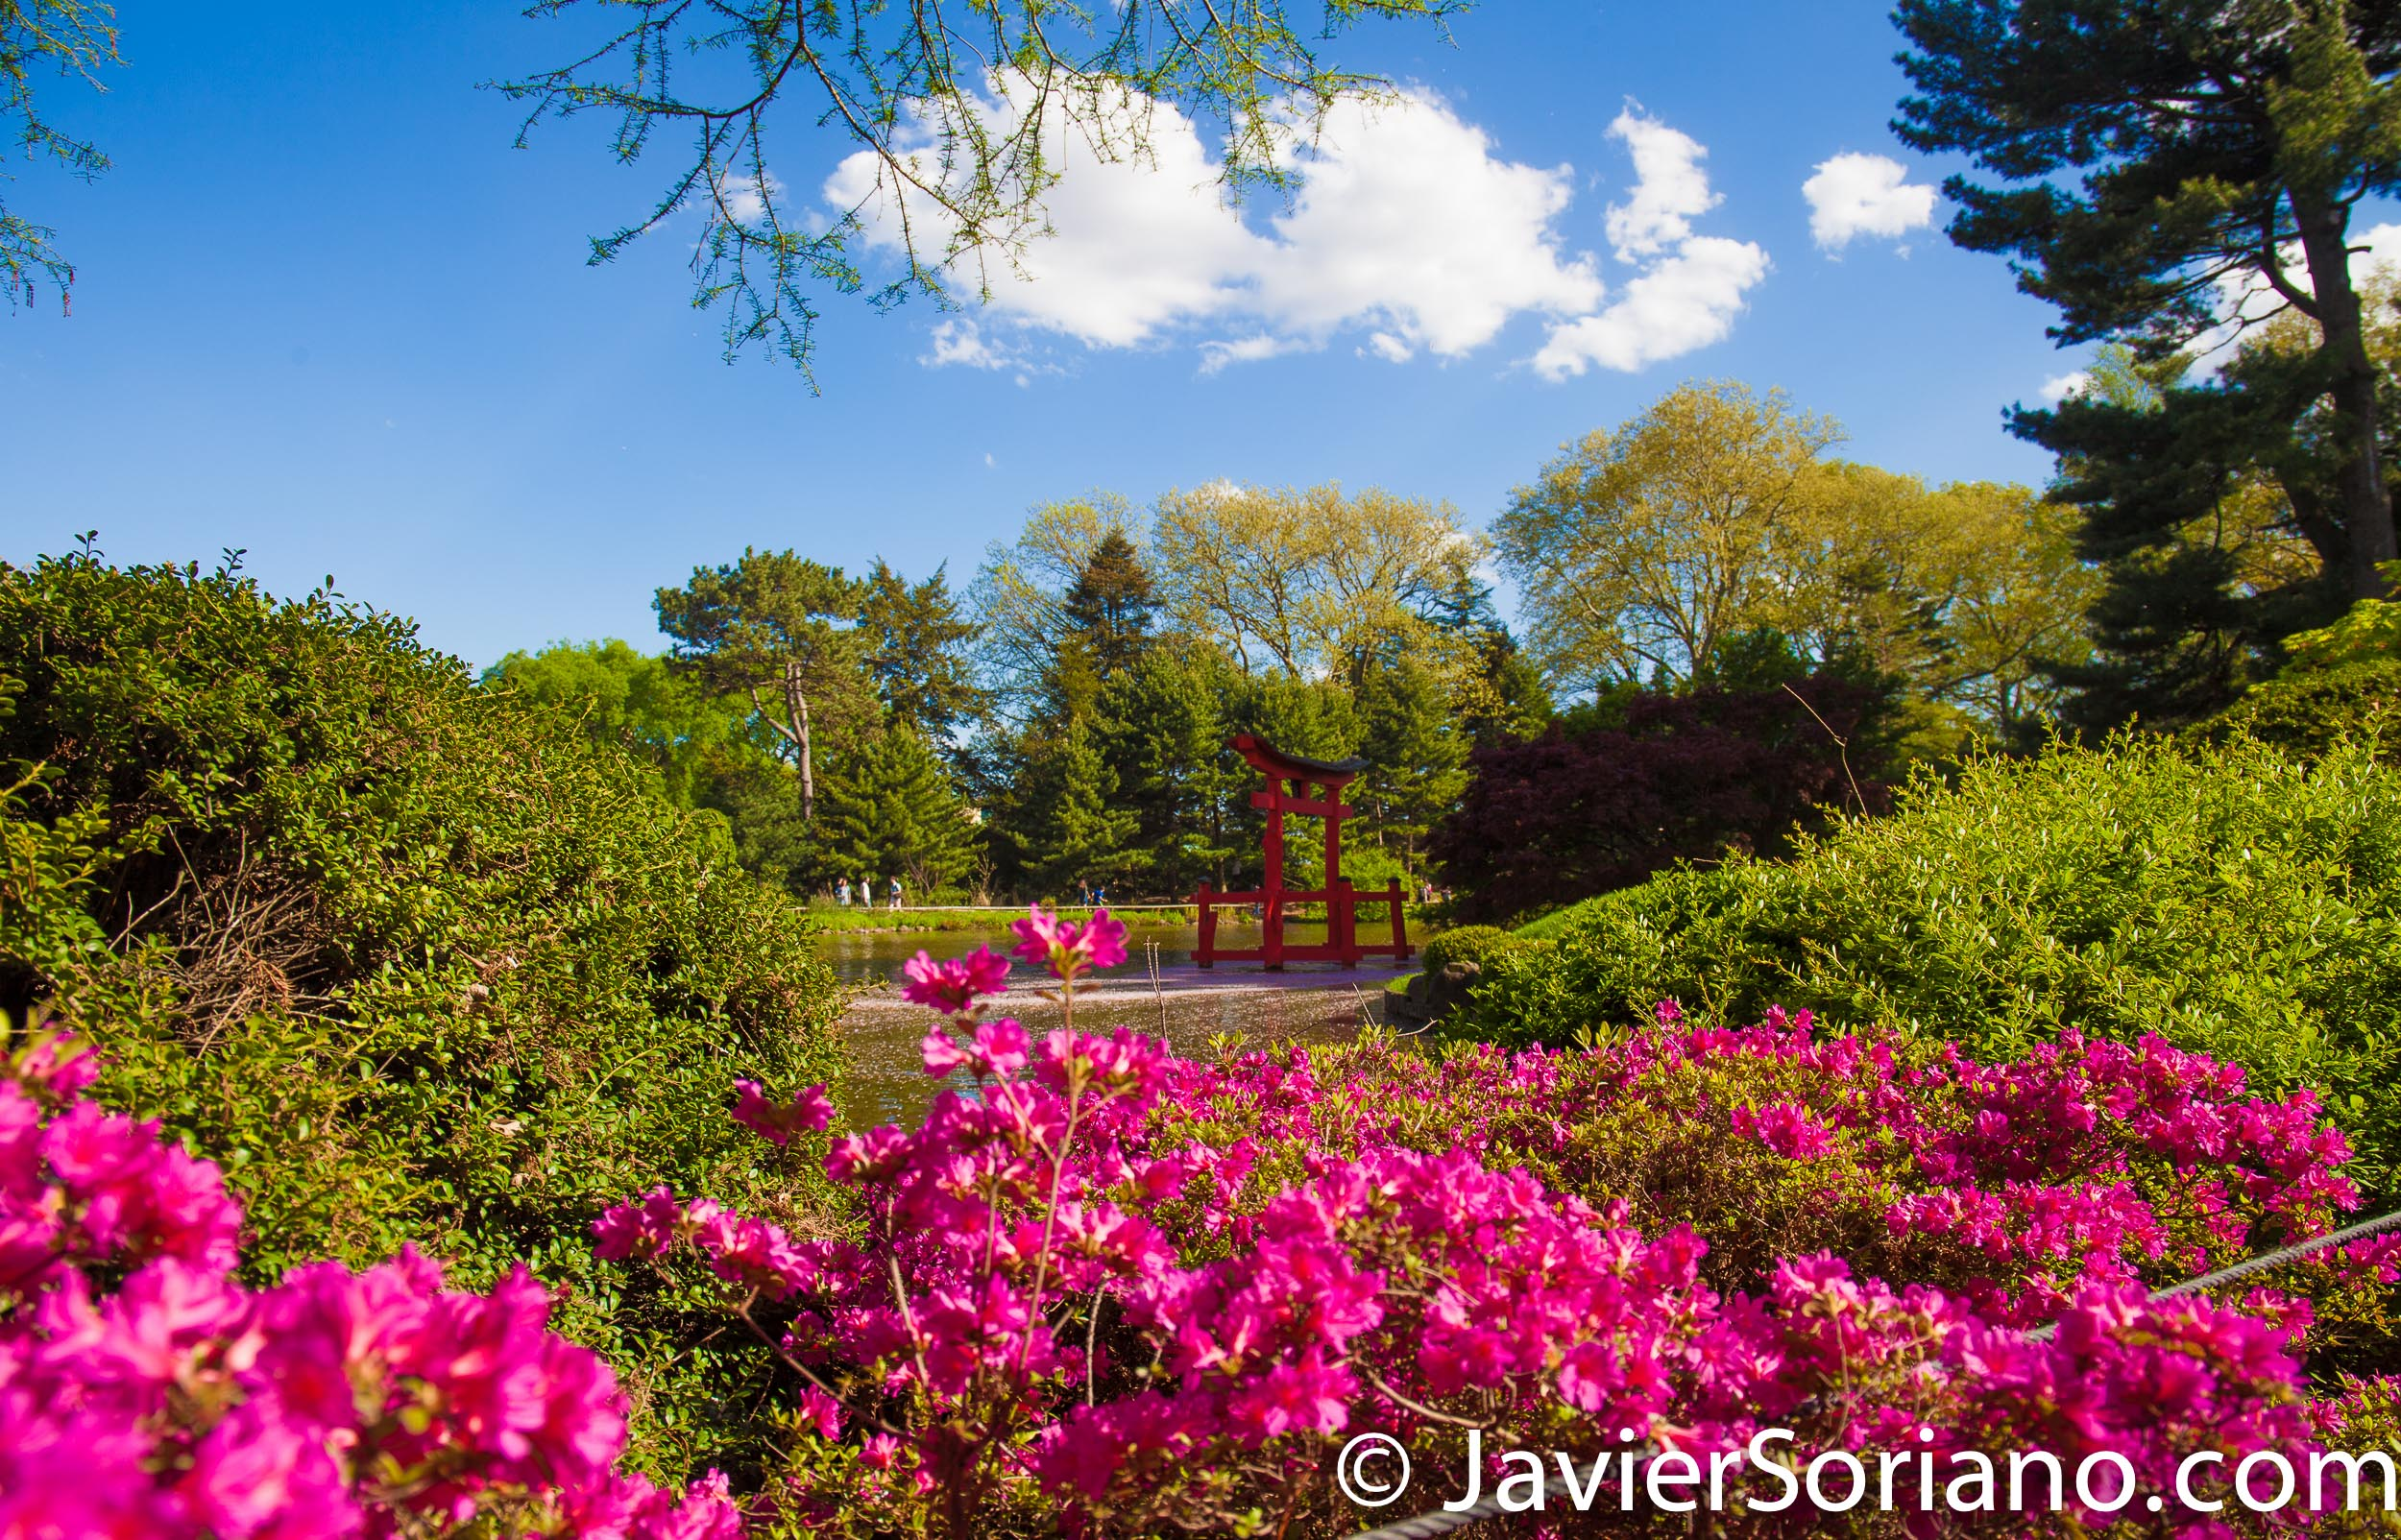 May 2, 2017 NYC - Brooklyn Botanic Garden. Jardín Botánico de Brooklyn. Photo by Javier Soriano/www.JavierSoriano.com